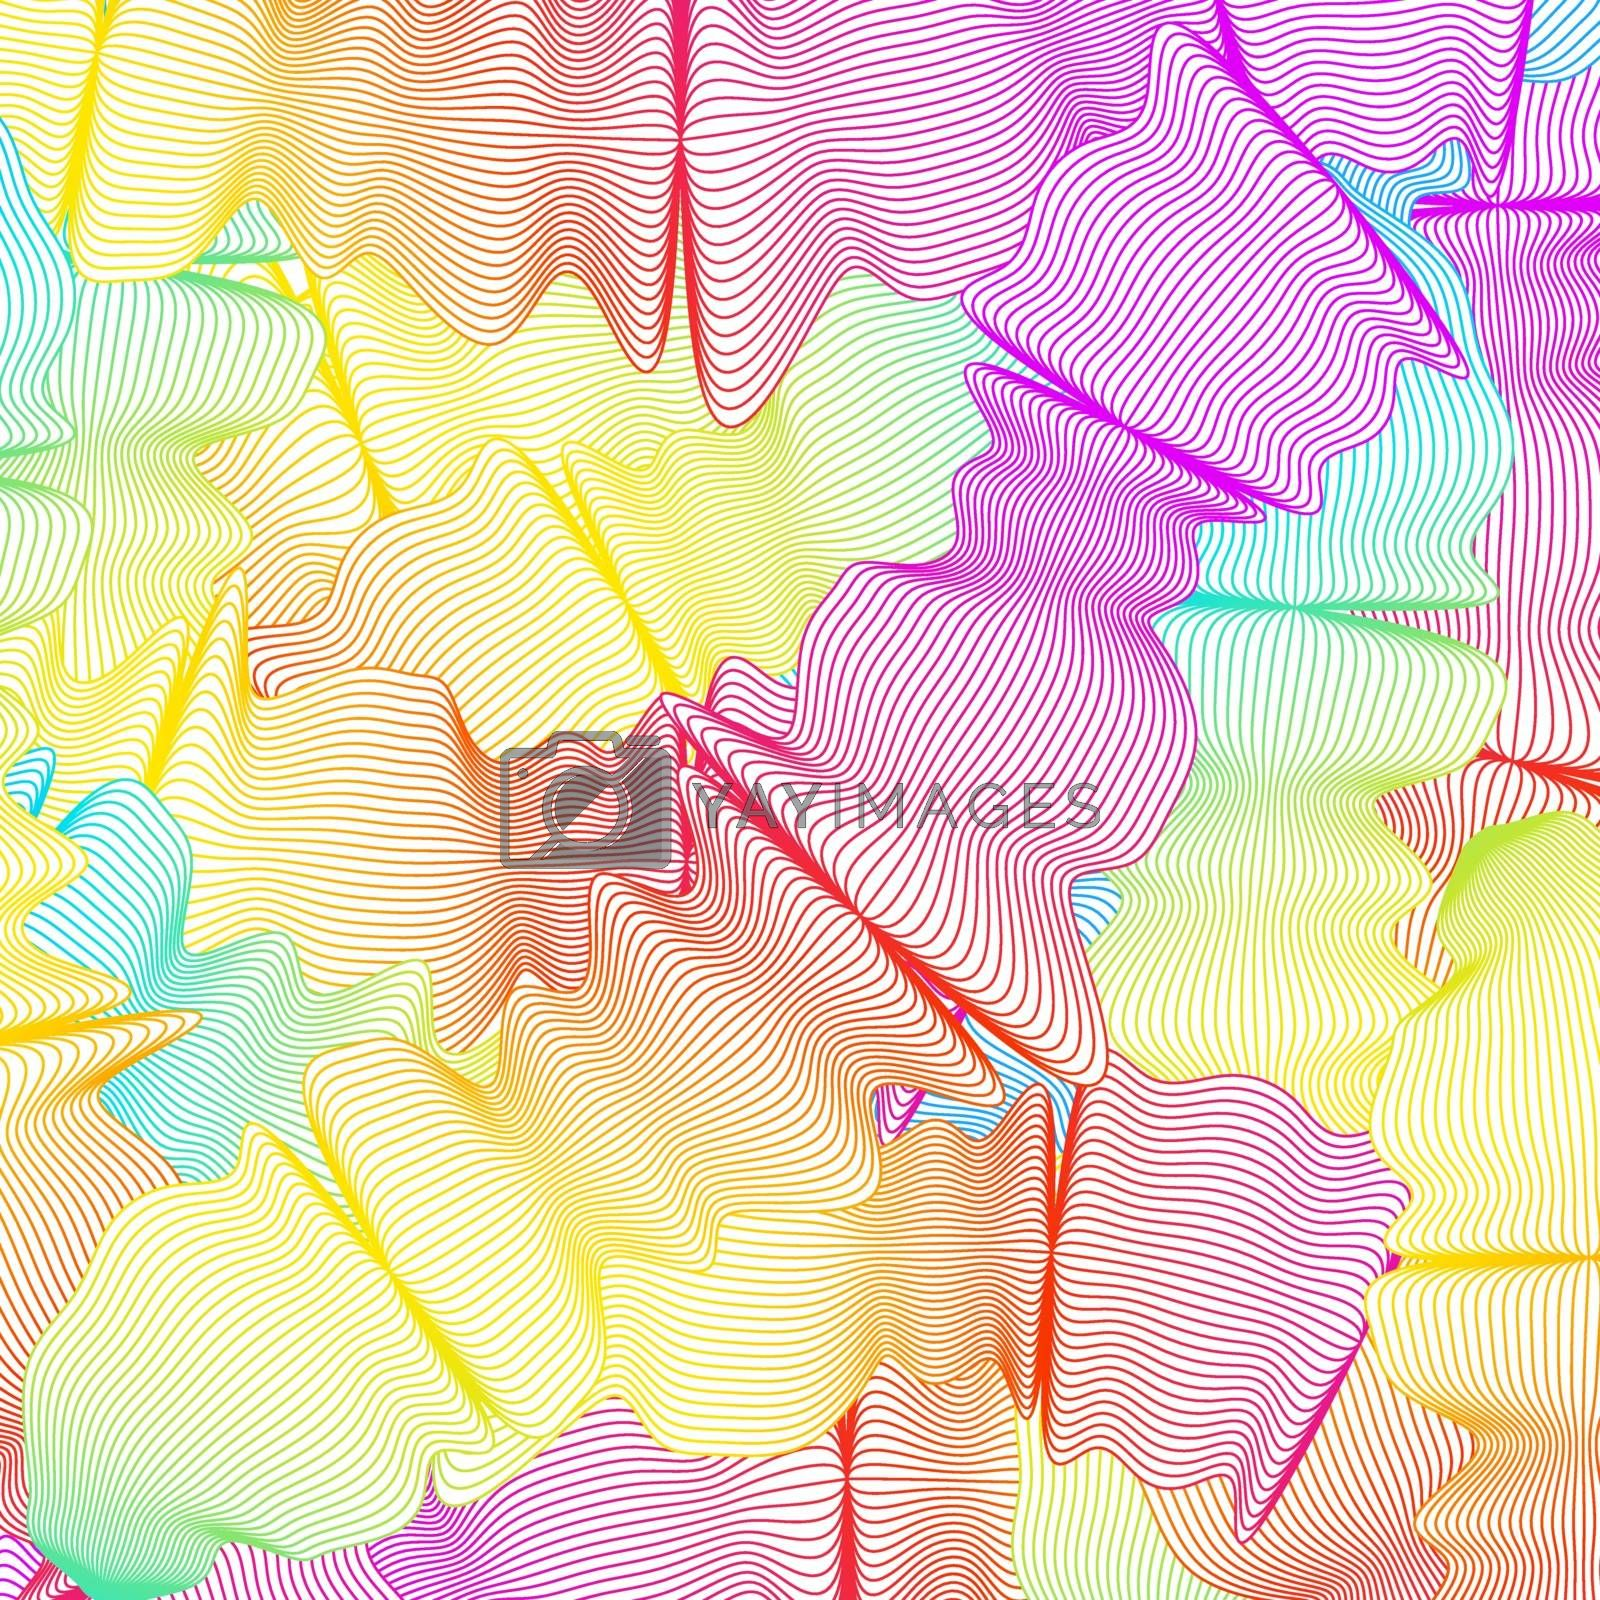 Royalty free image of Illustration of wavy curved colored lines. EPS 8 by Petrov_Vladimir